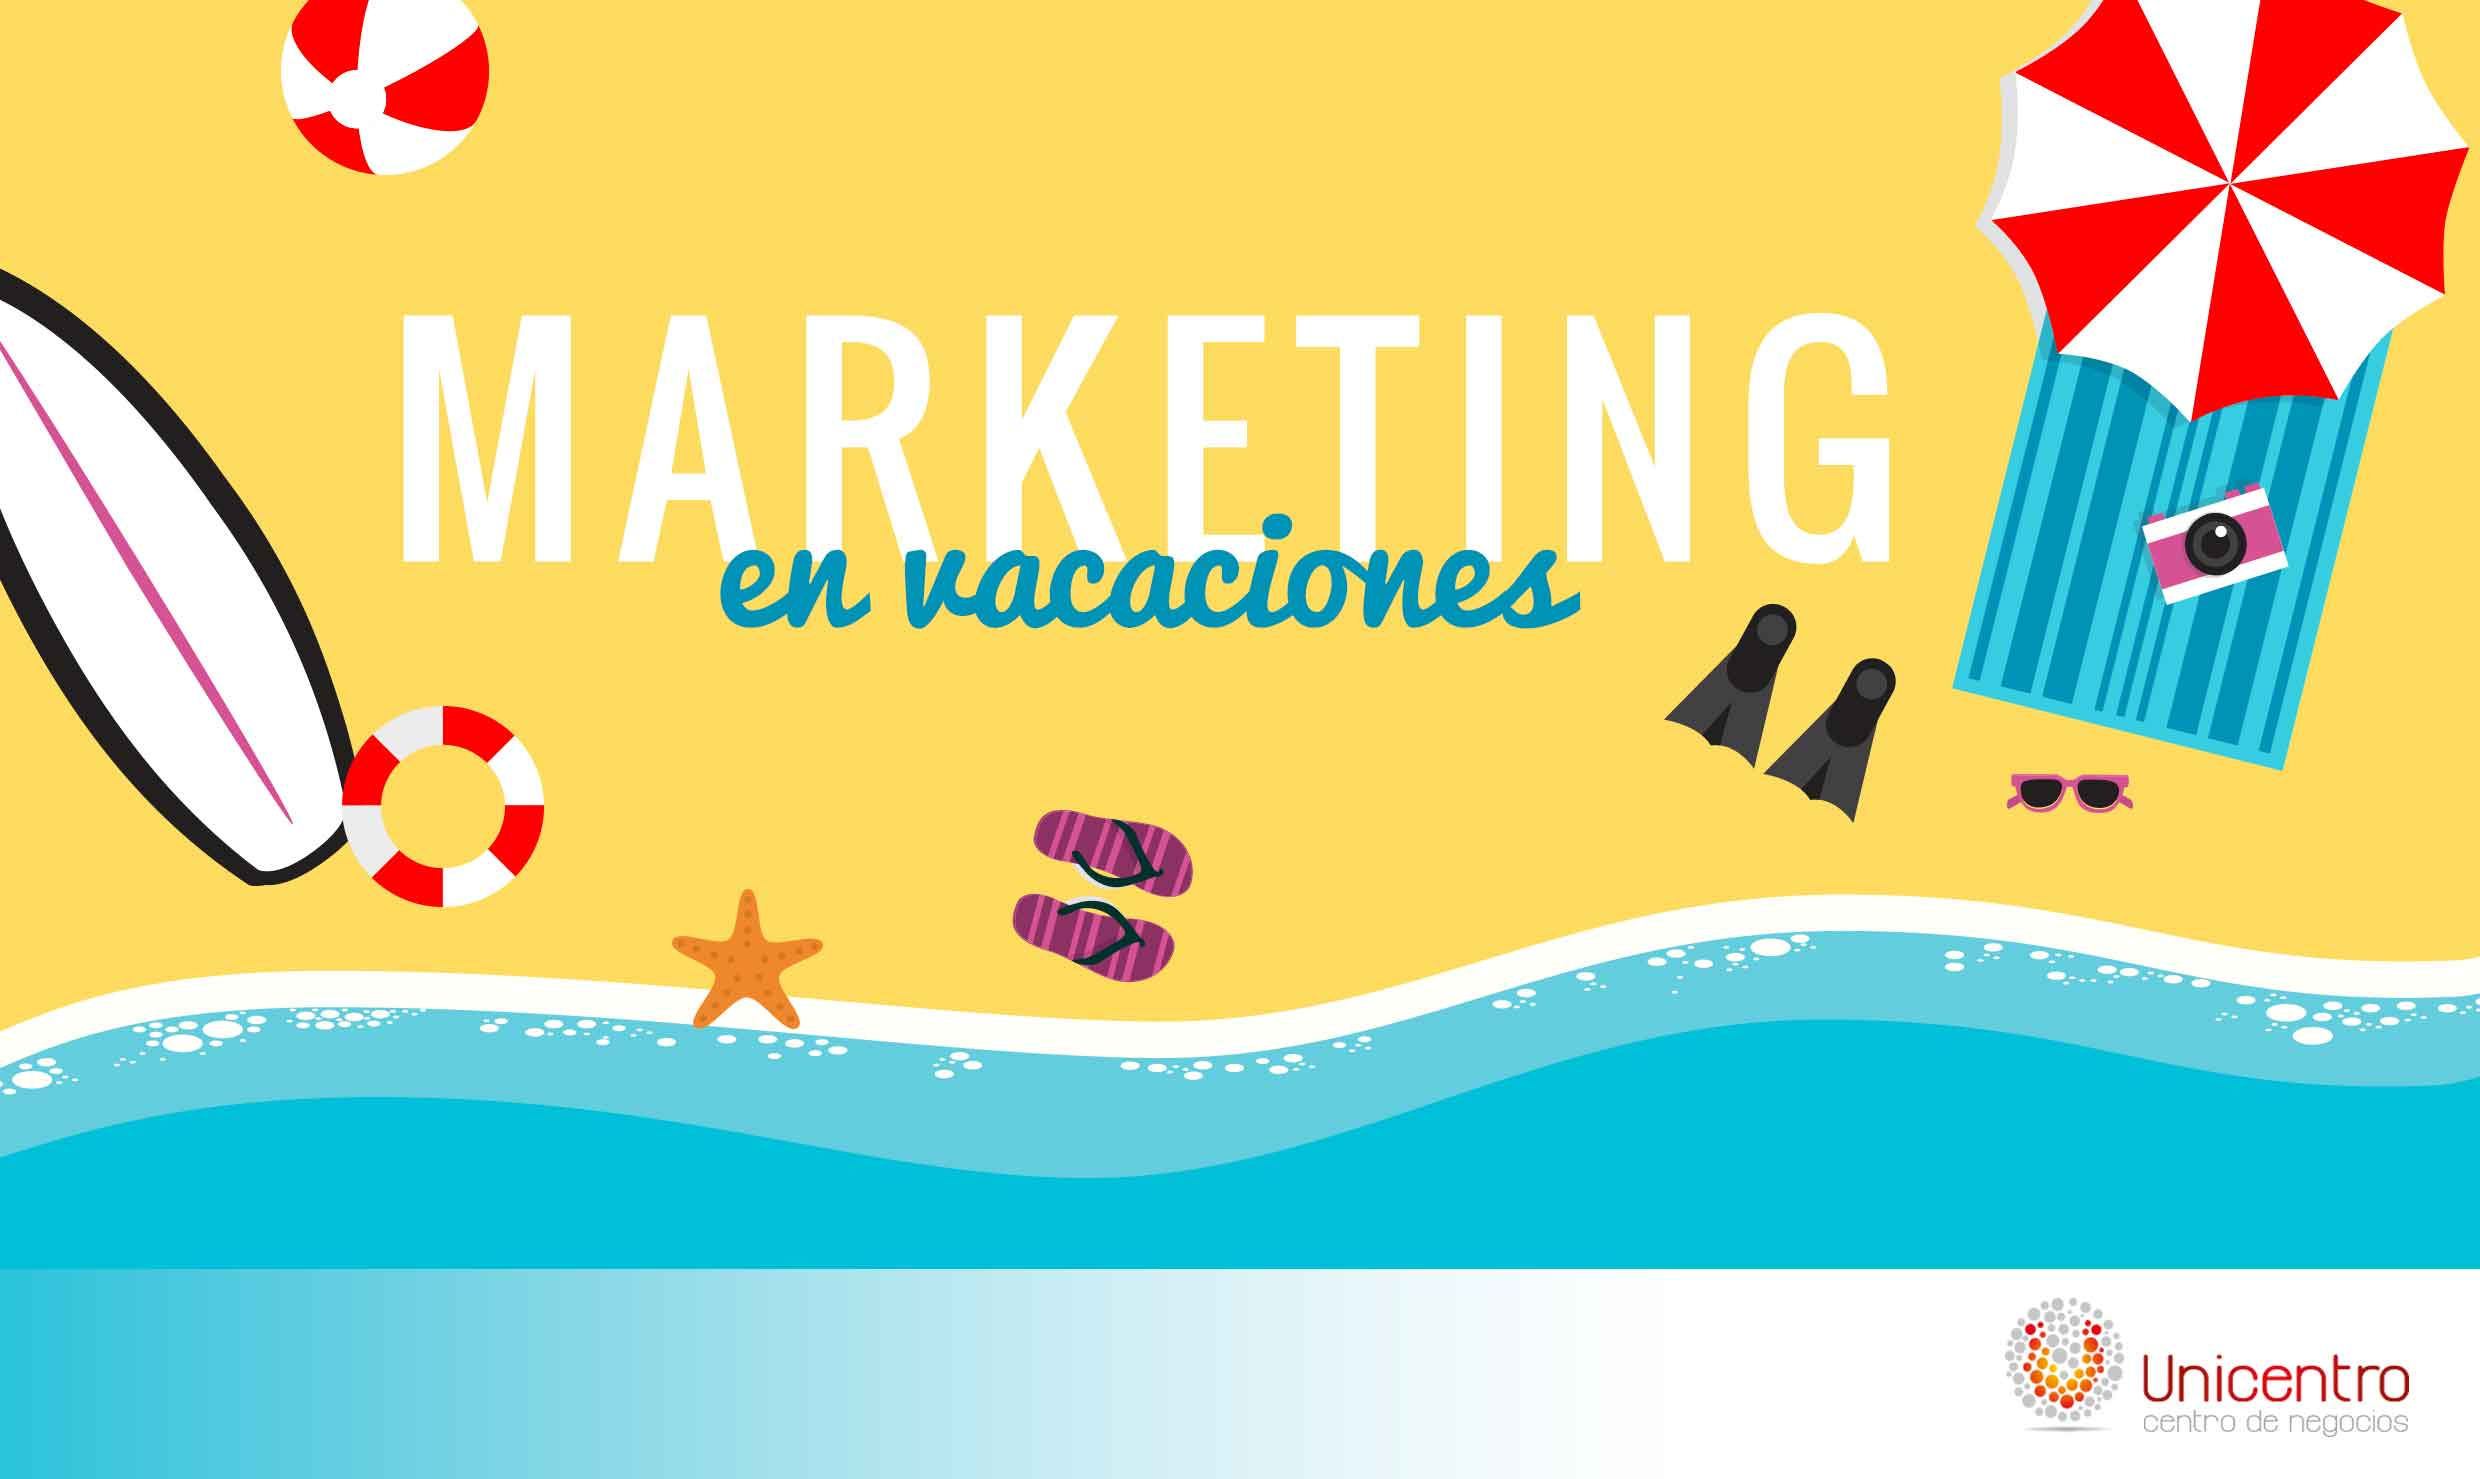 Marketing del descanso en vacaciones